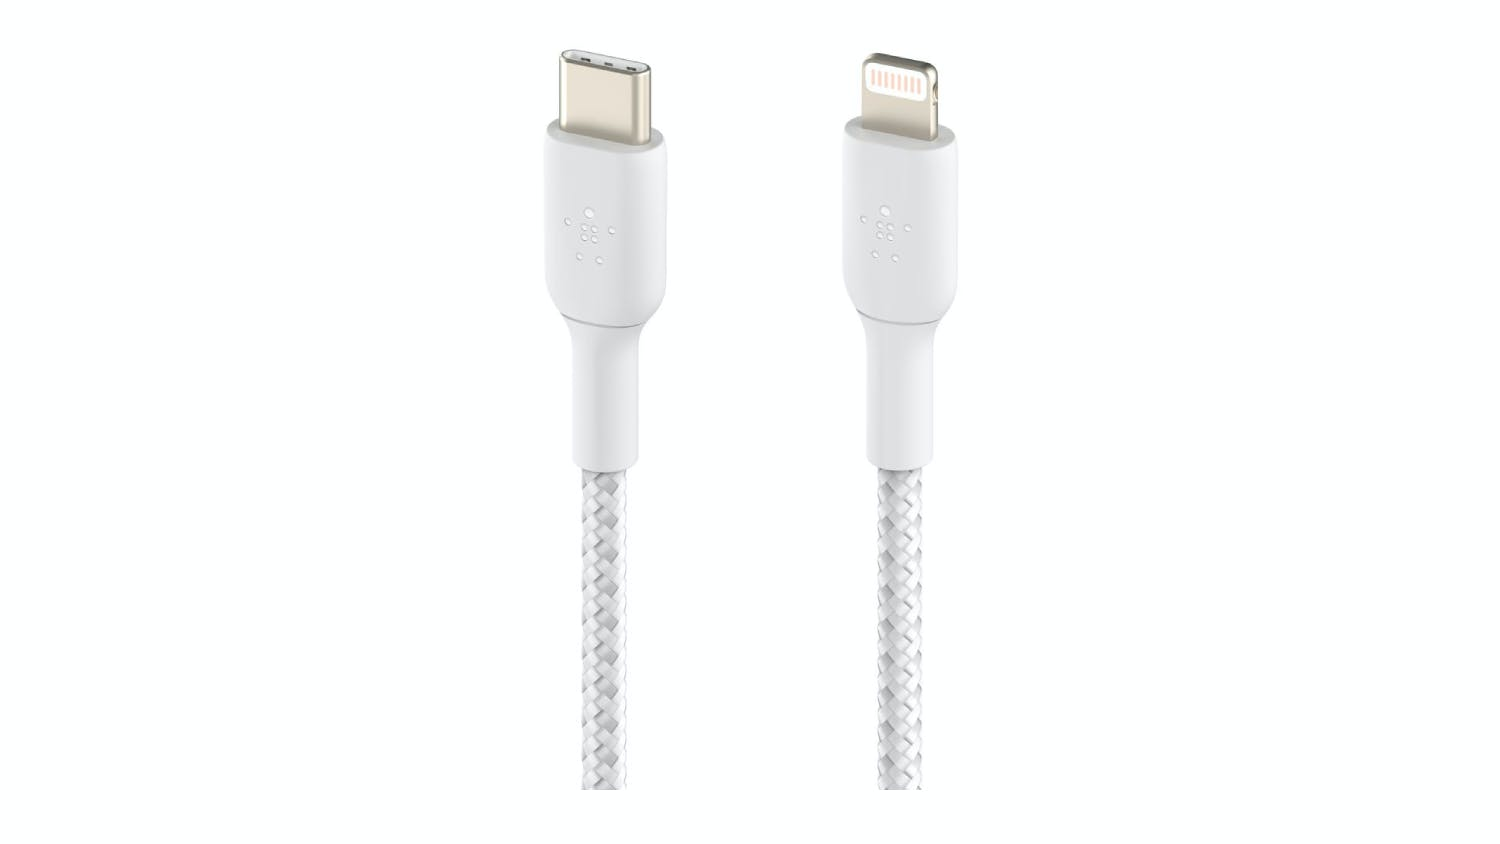 Belkin Boost Up Charge USB-C to Lightning Braided Cable 1m - White